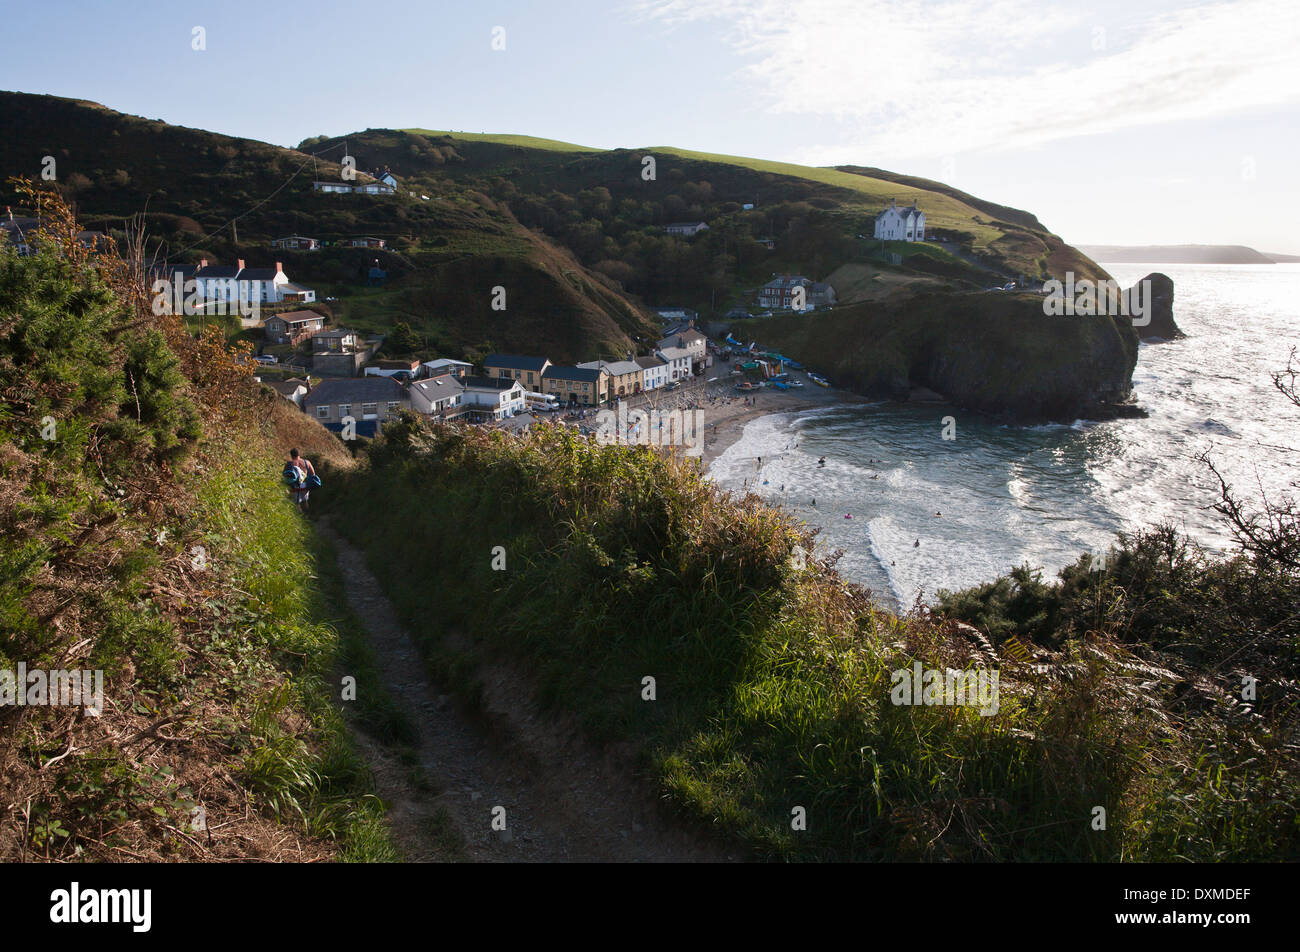 Llangrannog beach in Wales. - Stock Image